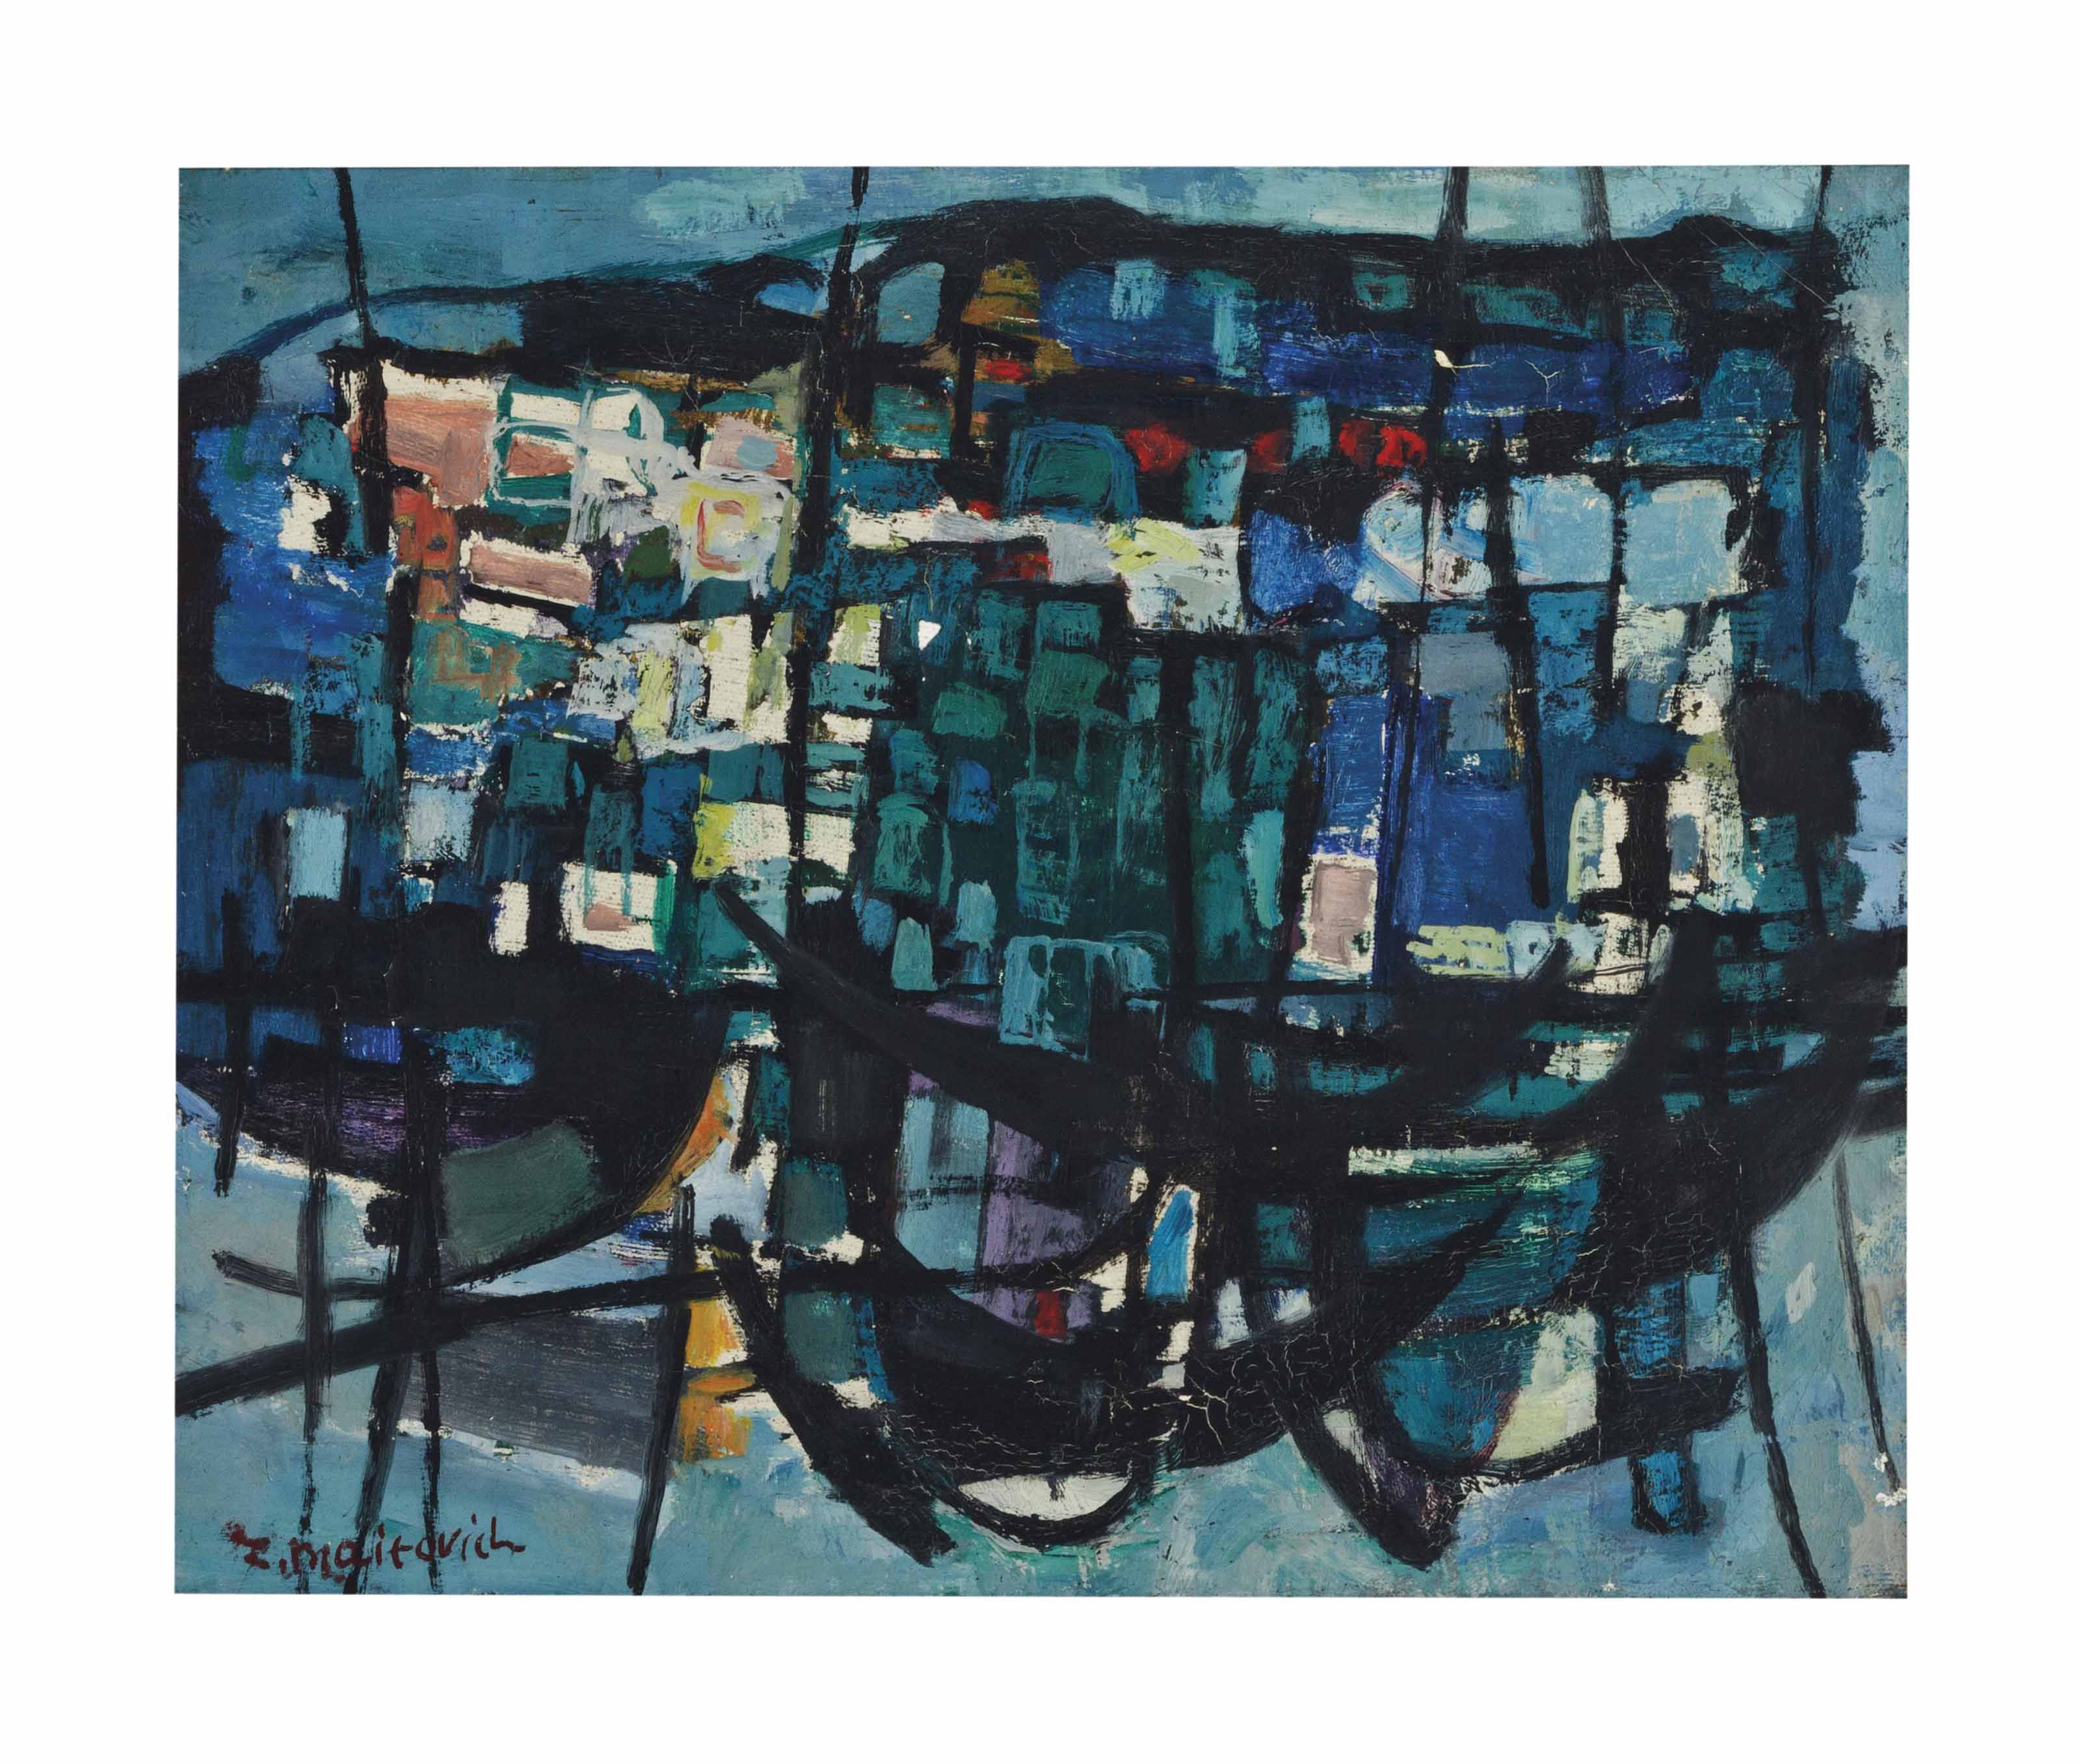 Untitled (boats in a harbor)